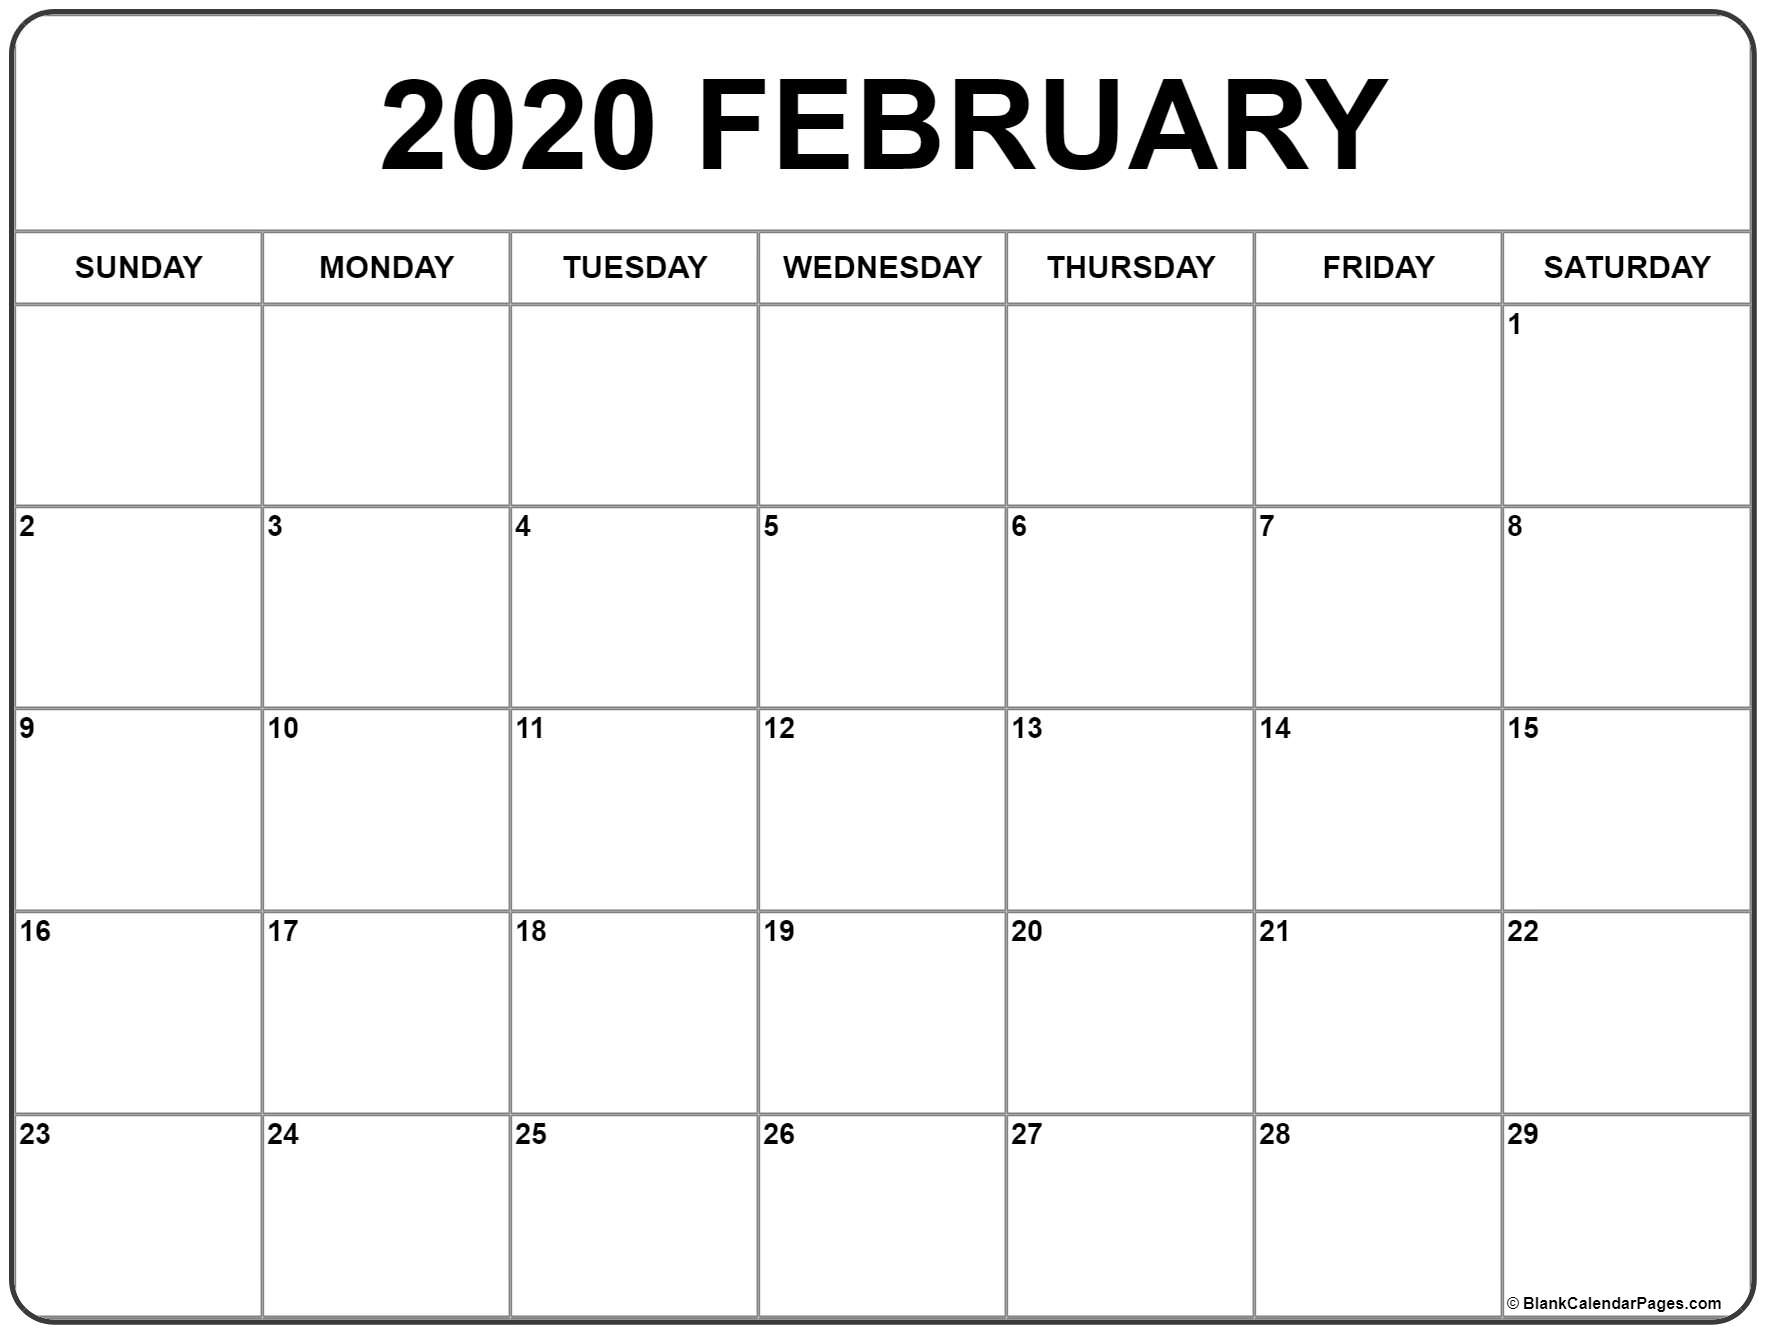 February 2020 Calendar | Free Printable Monthly Calendars pertaining to Free Printable Calendar 2020 Motivational